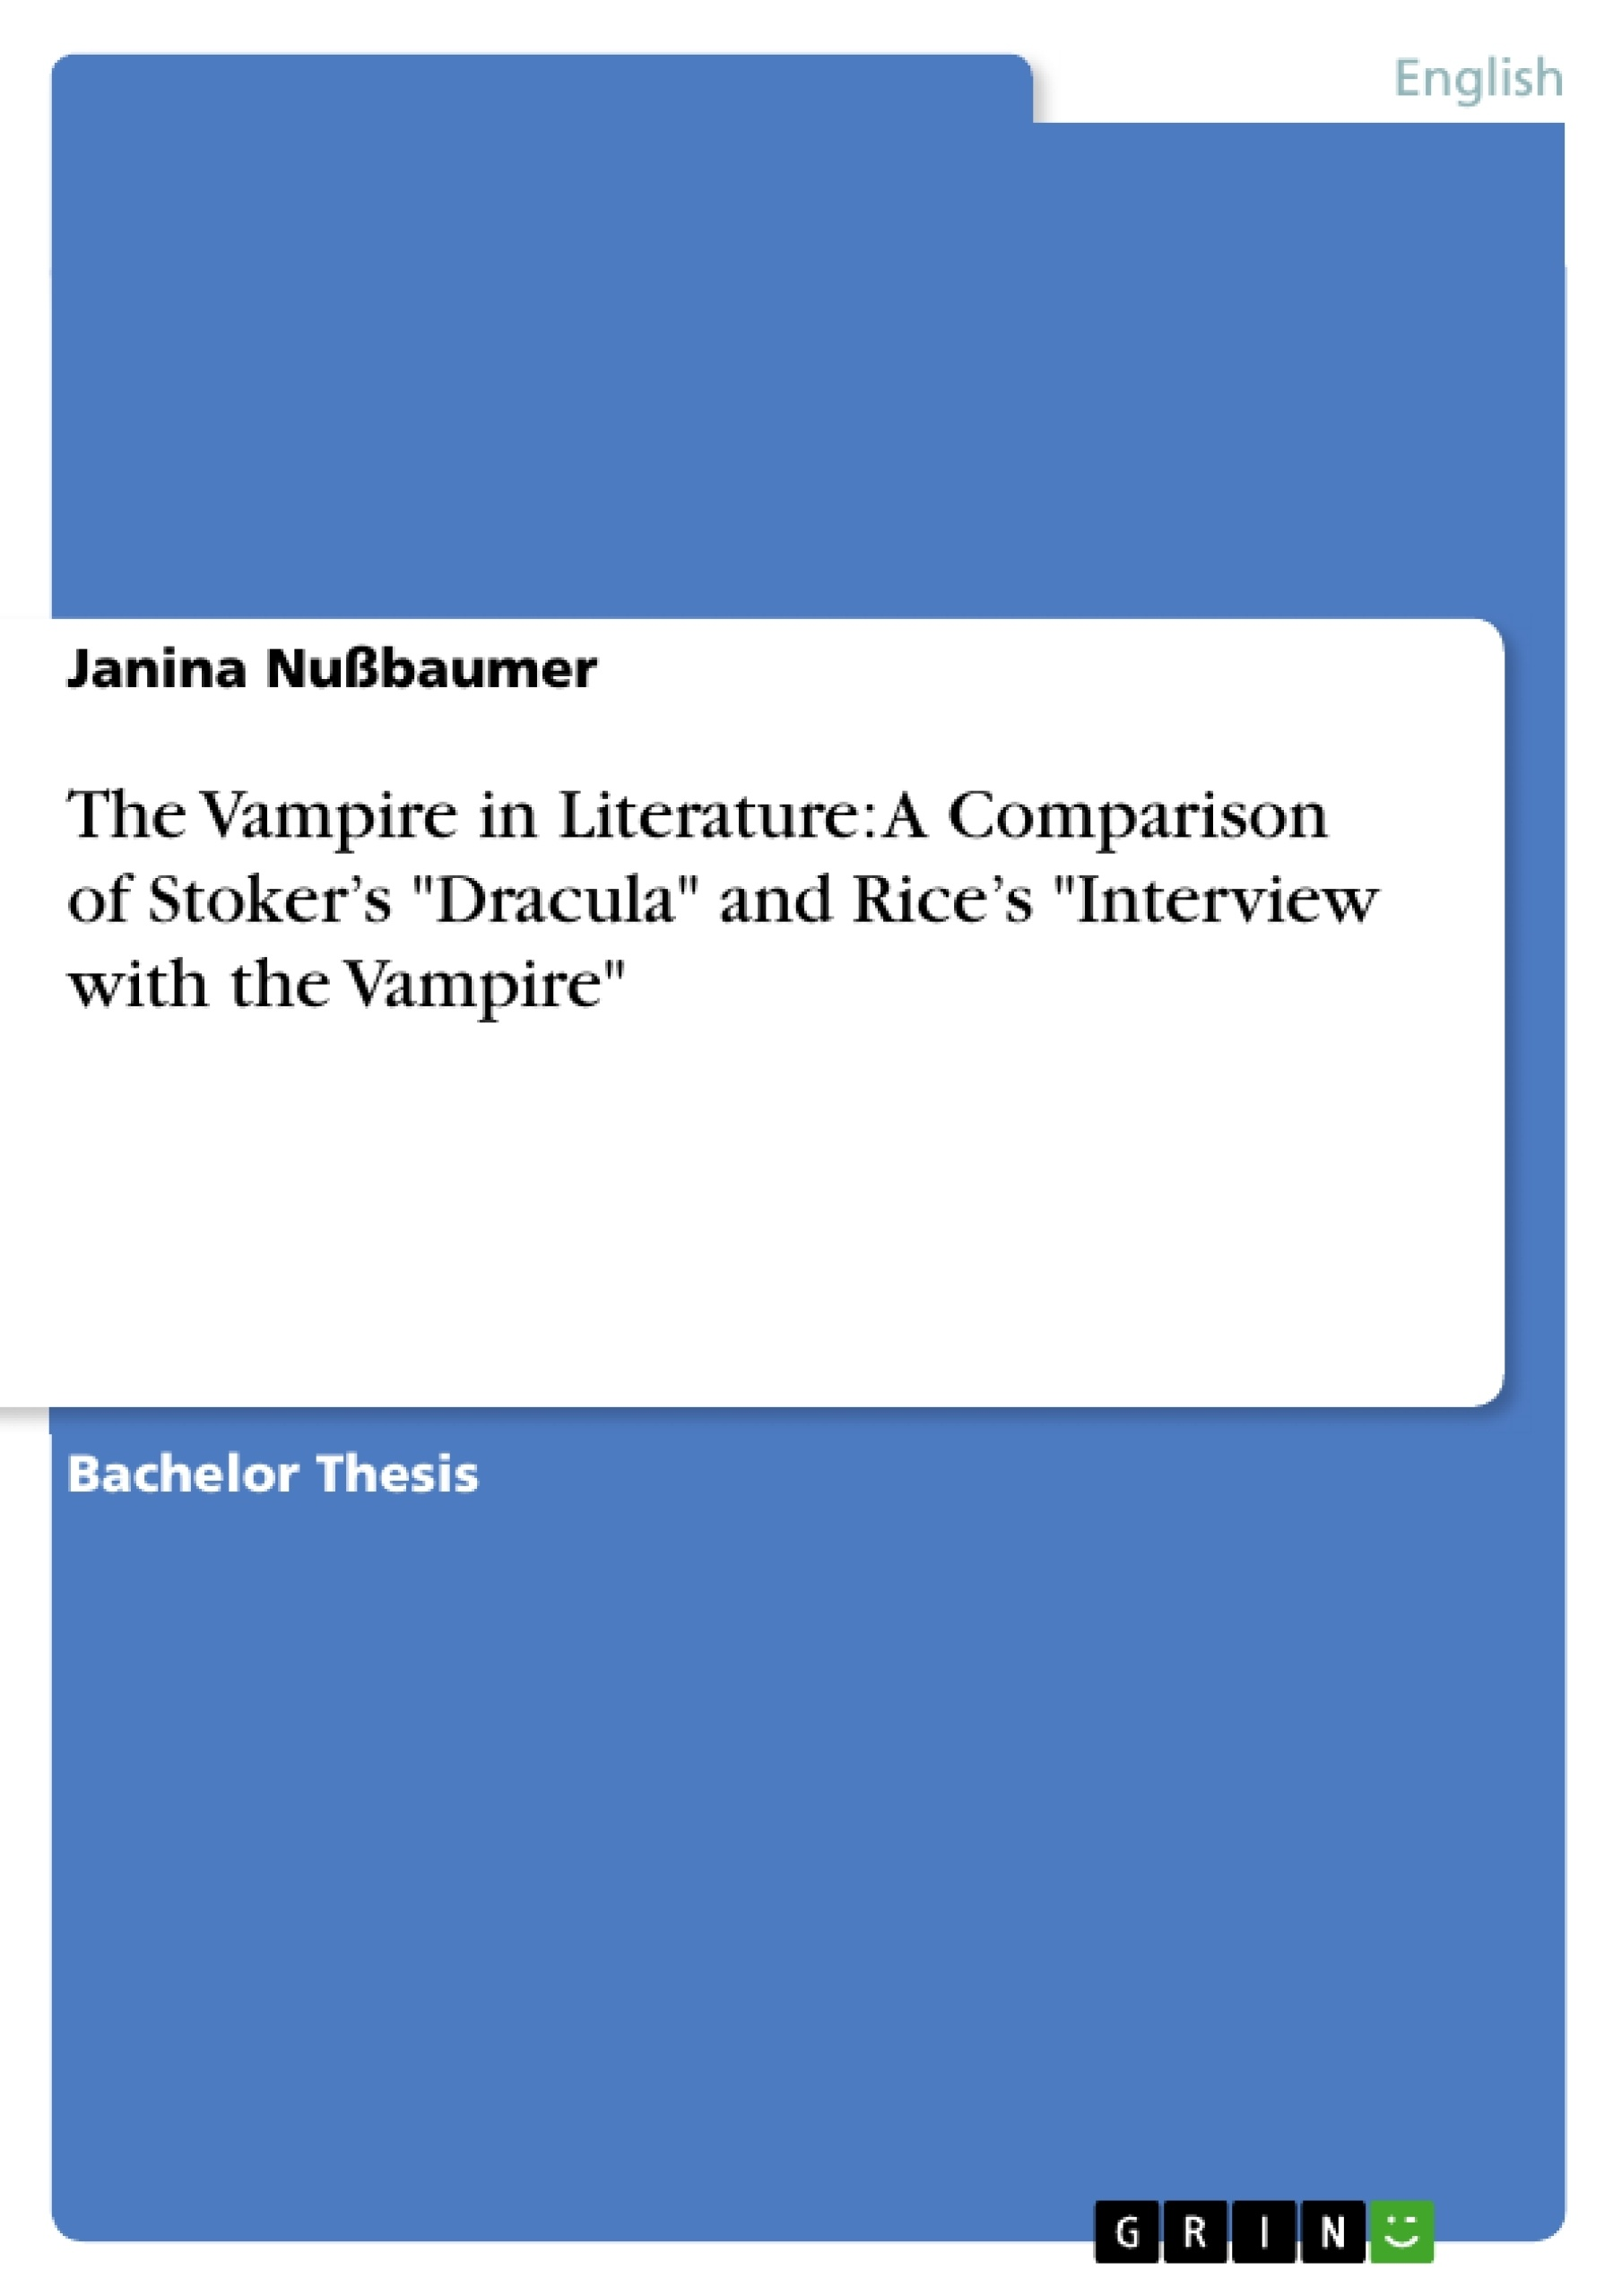 the vampire in literature a comparison of stoker s dracula and the vampire in literature a comparison of stoker s dracula and publish your master s thesis bachelor s thesis essay or term paper